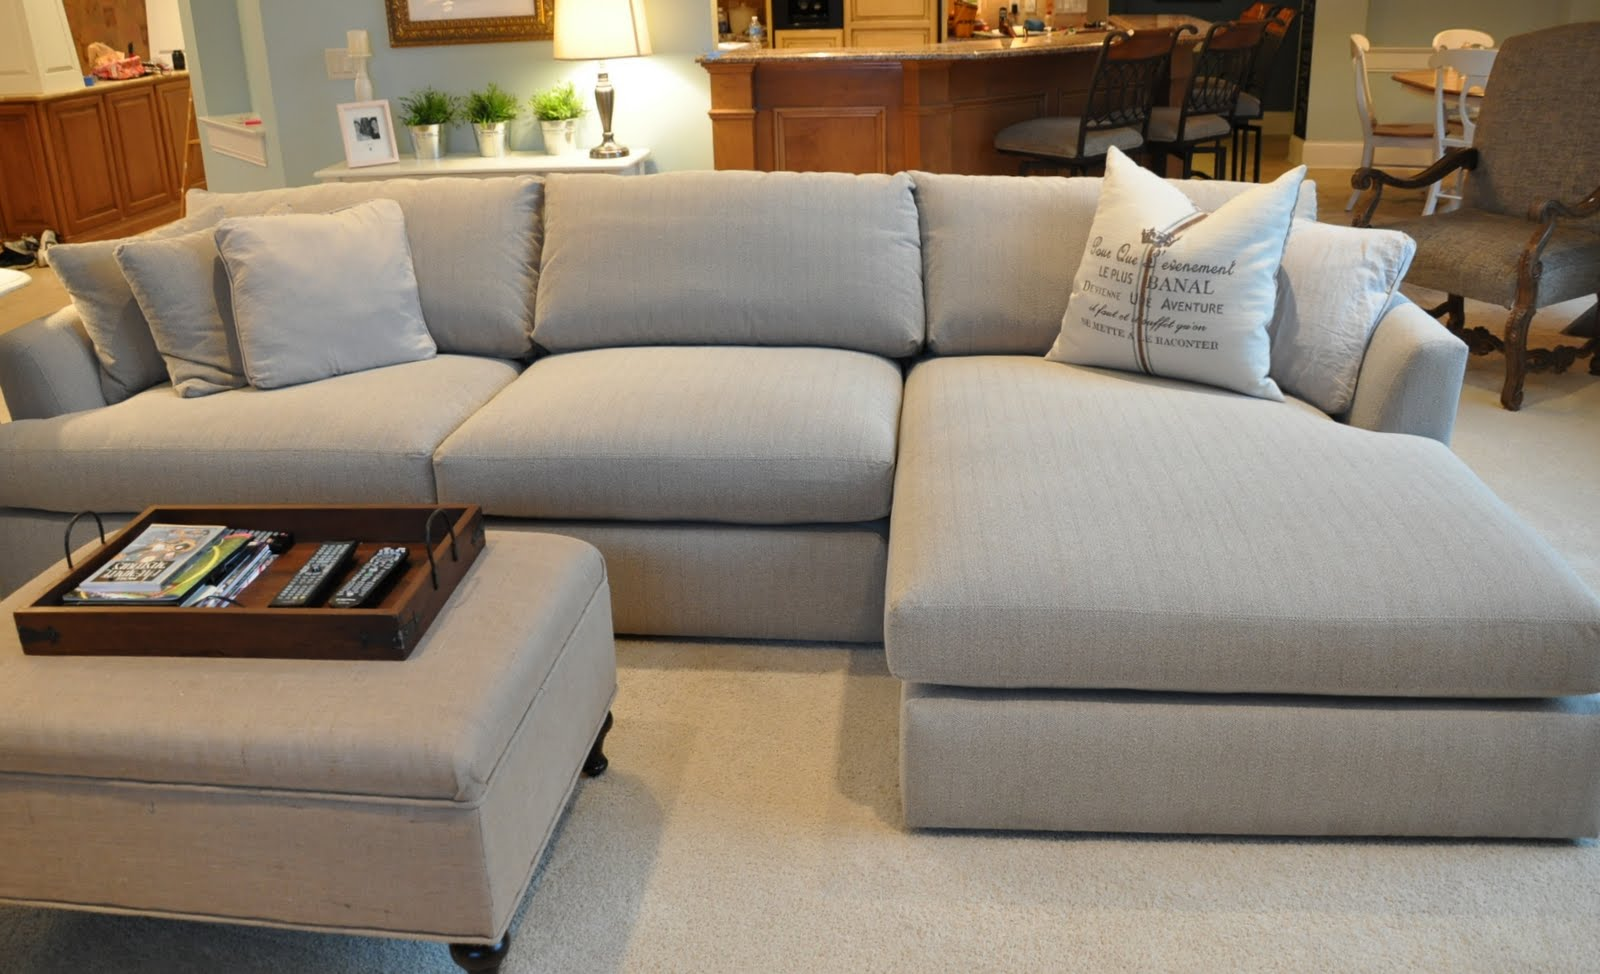 The sectional has landed evolution of style for Big comfy chaise lounge